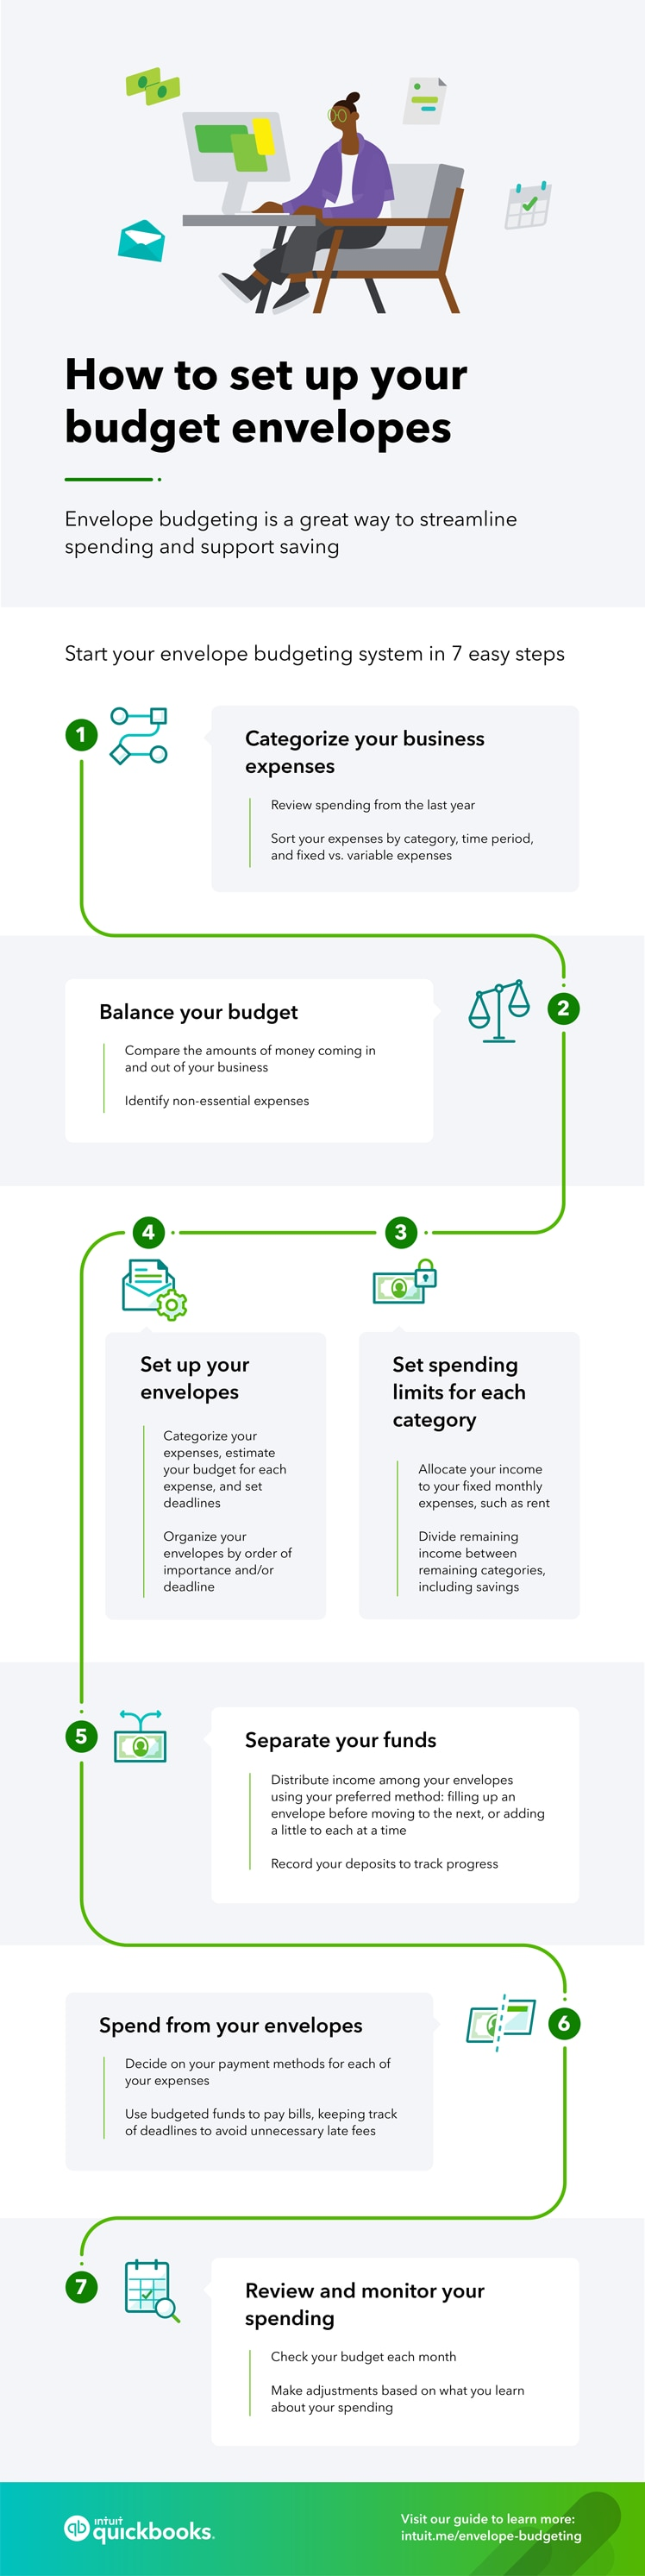 How to set up your budget envelopes Envelope budgeting is a great way to streamline spending and support saving. Start your envelope budgeting system in 7 easy steps